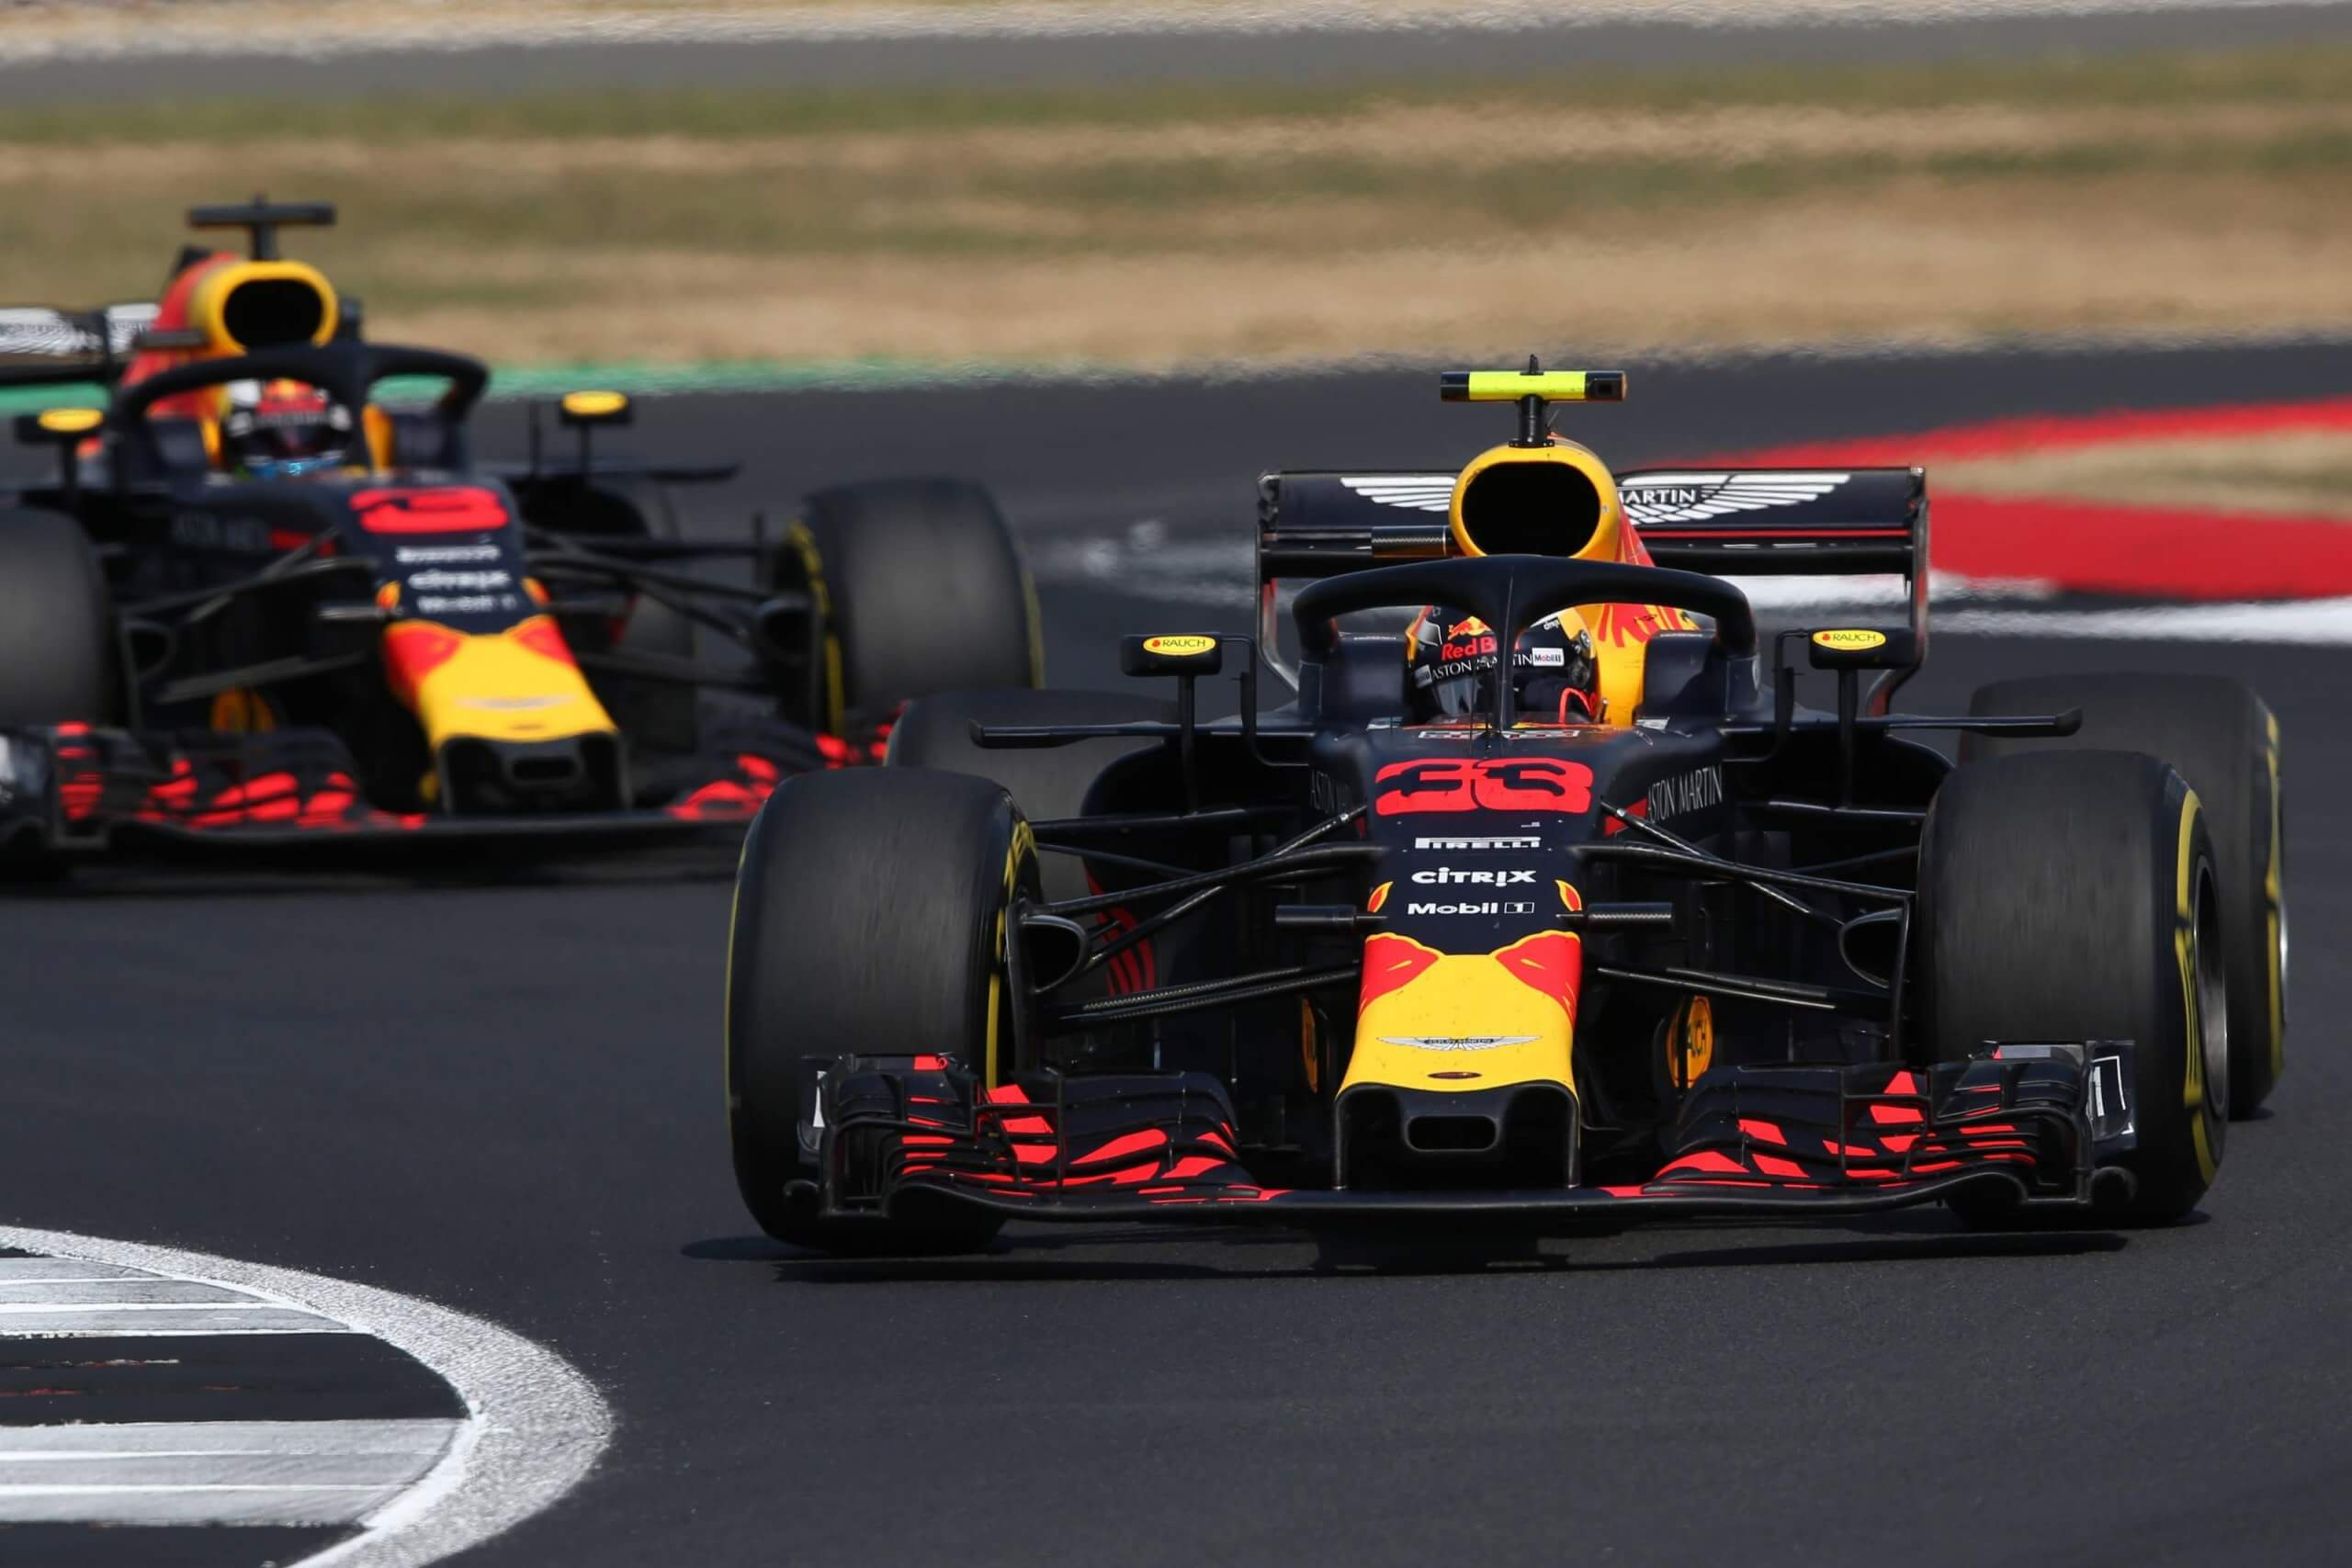 Sim racer beats former F1 driver in real-world event